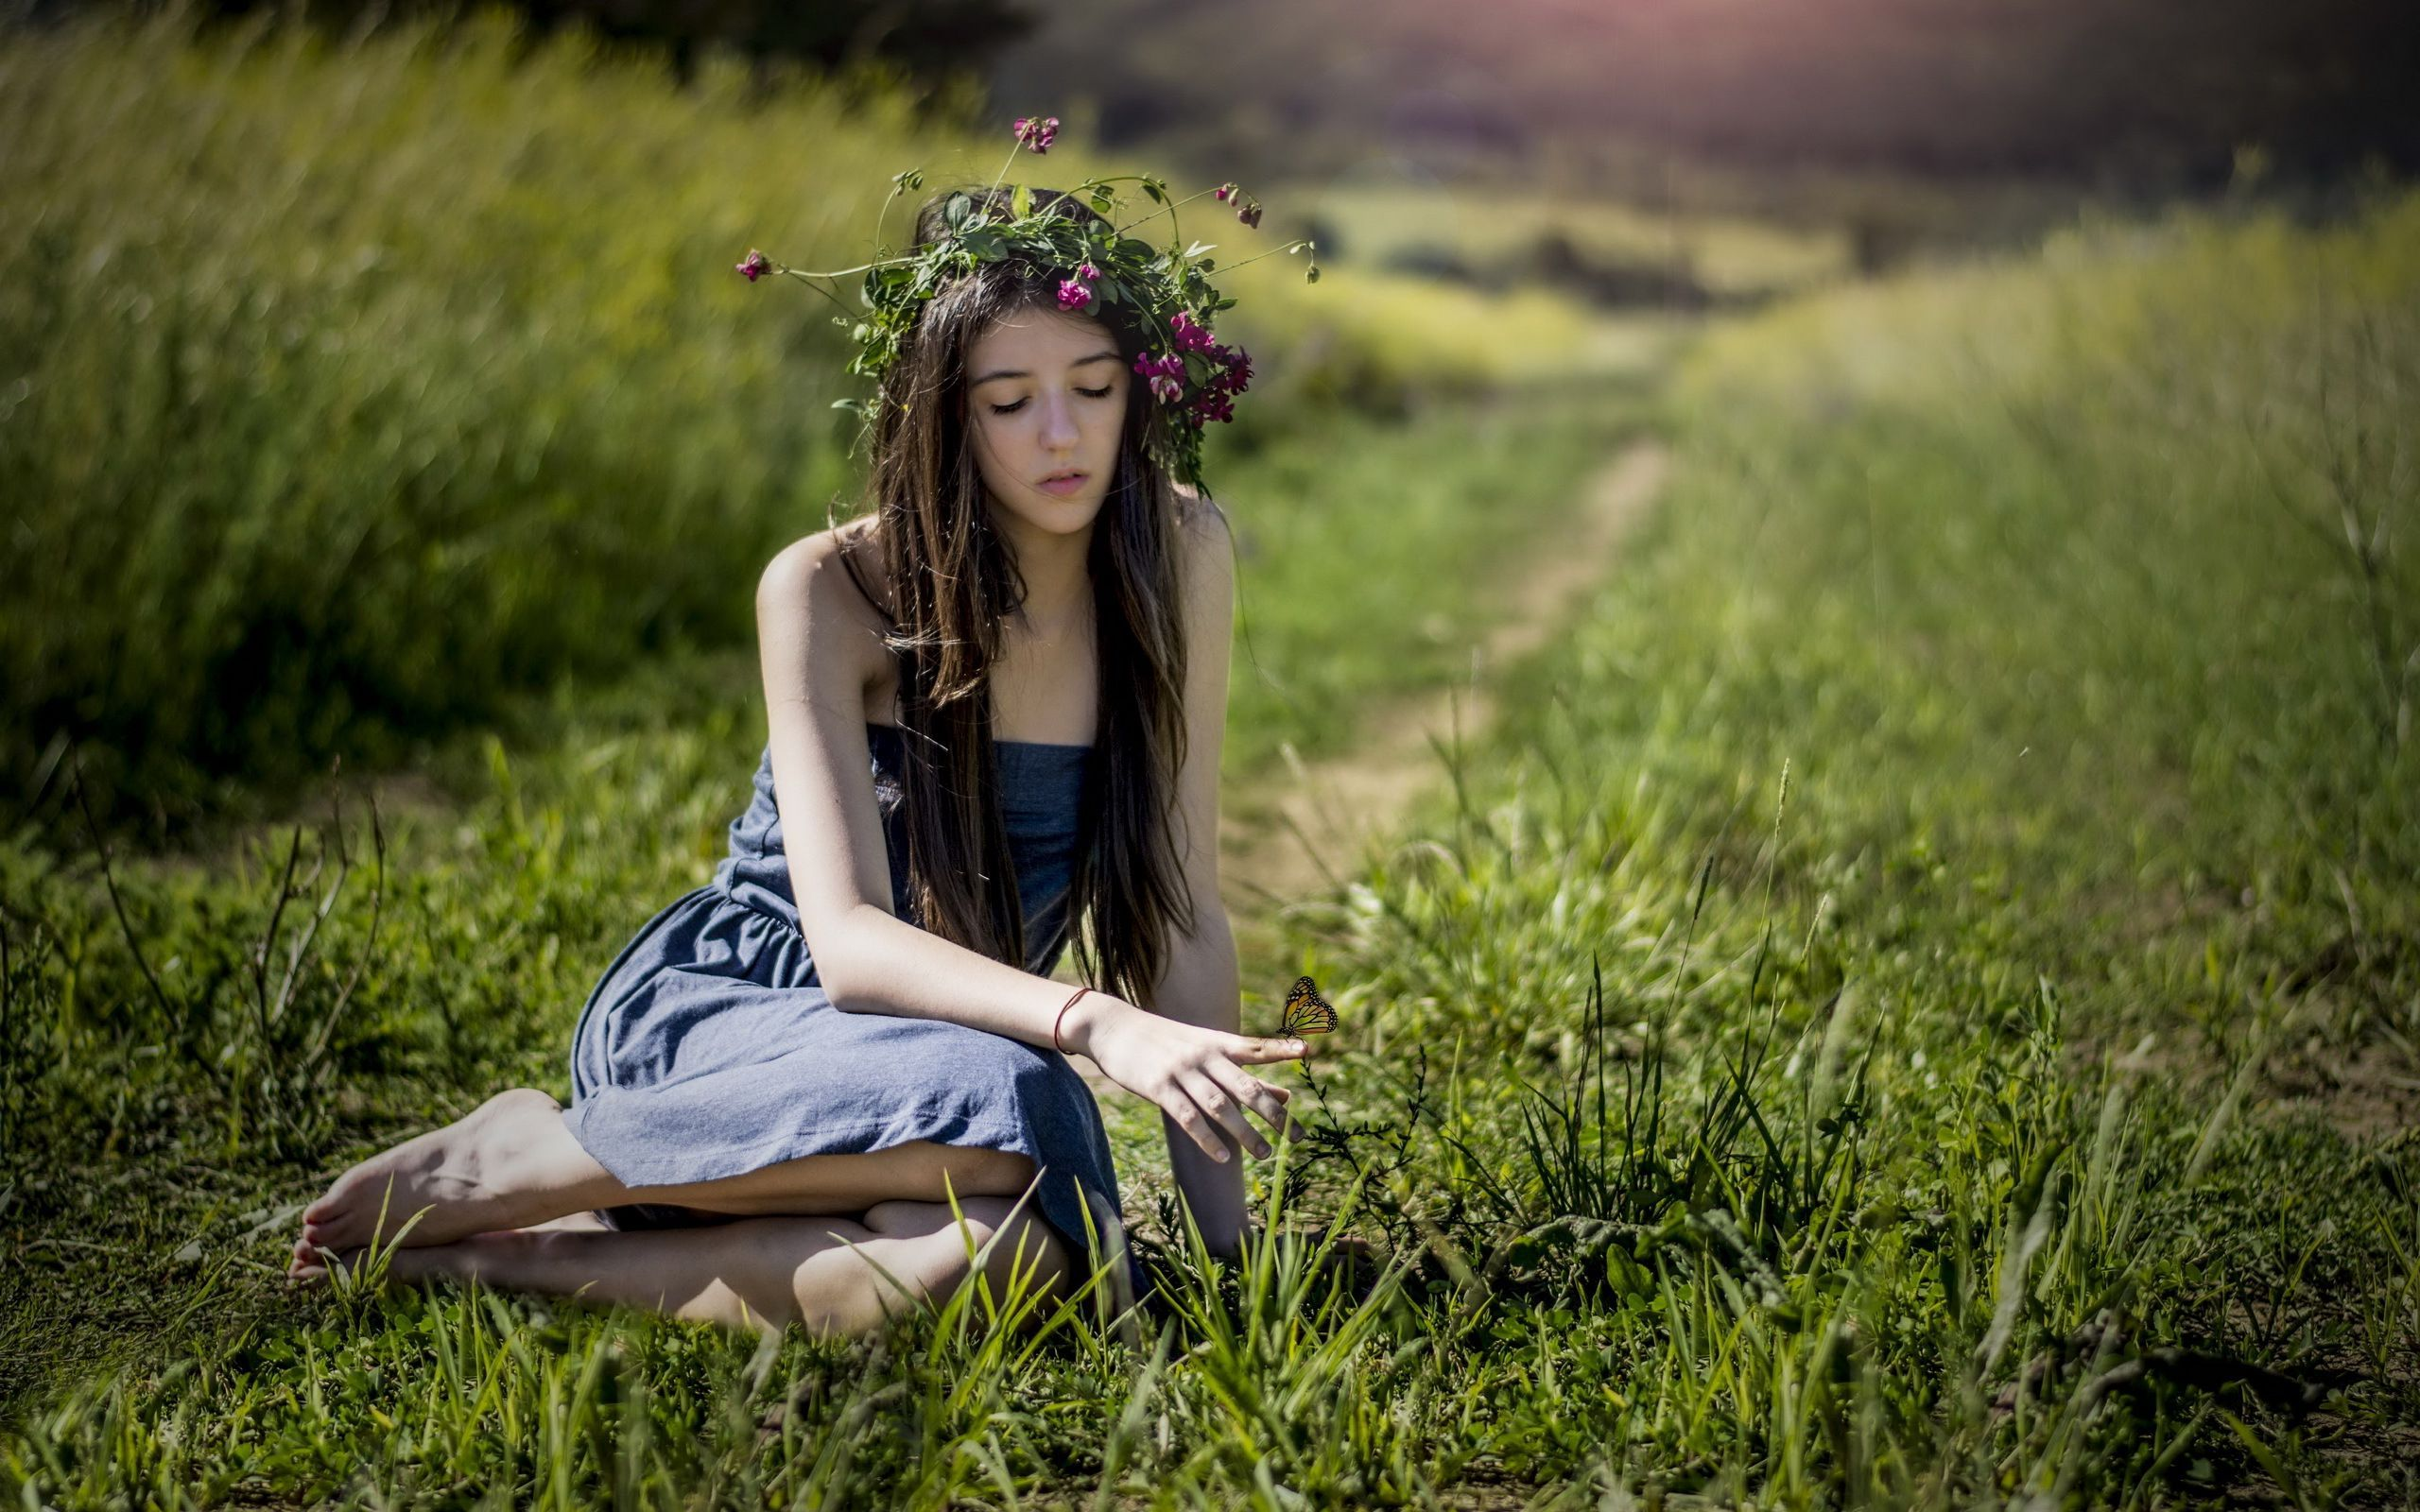 Cute girl butterfly grass hd girls 4k wallpapers images backgrounds photos and pictures - Very cute girl wallpaper hd ...